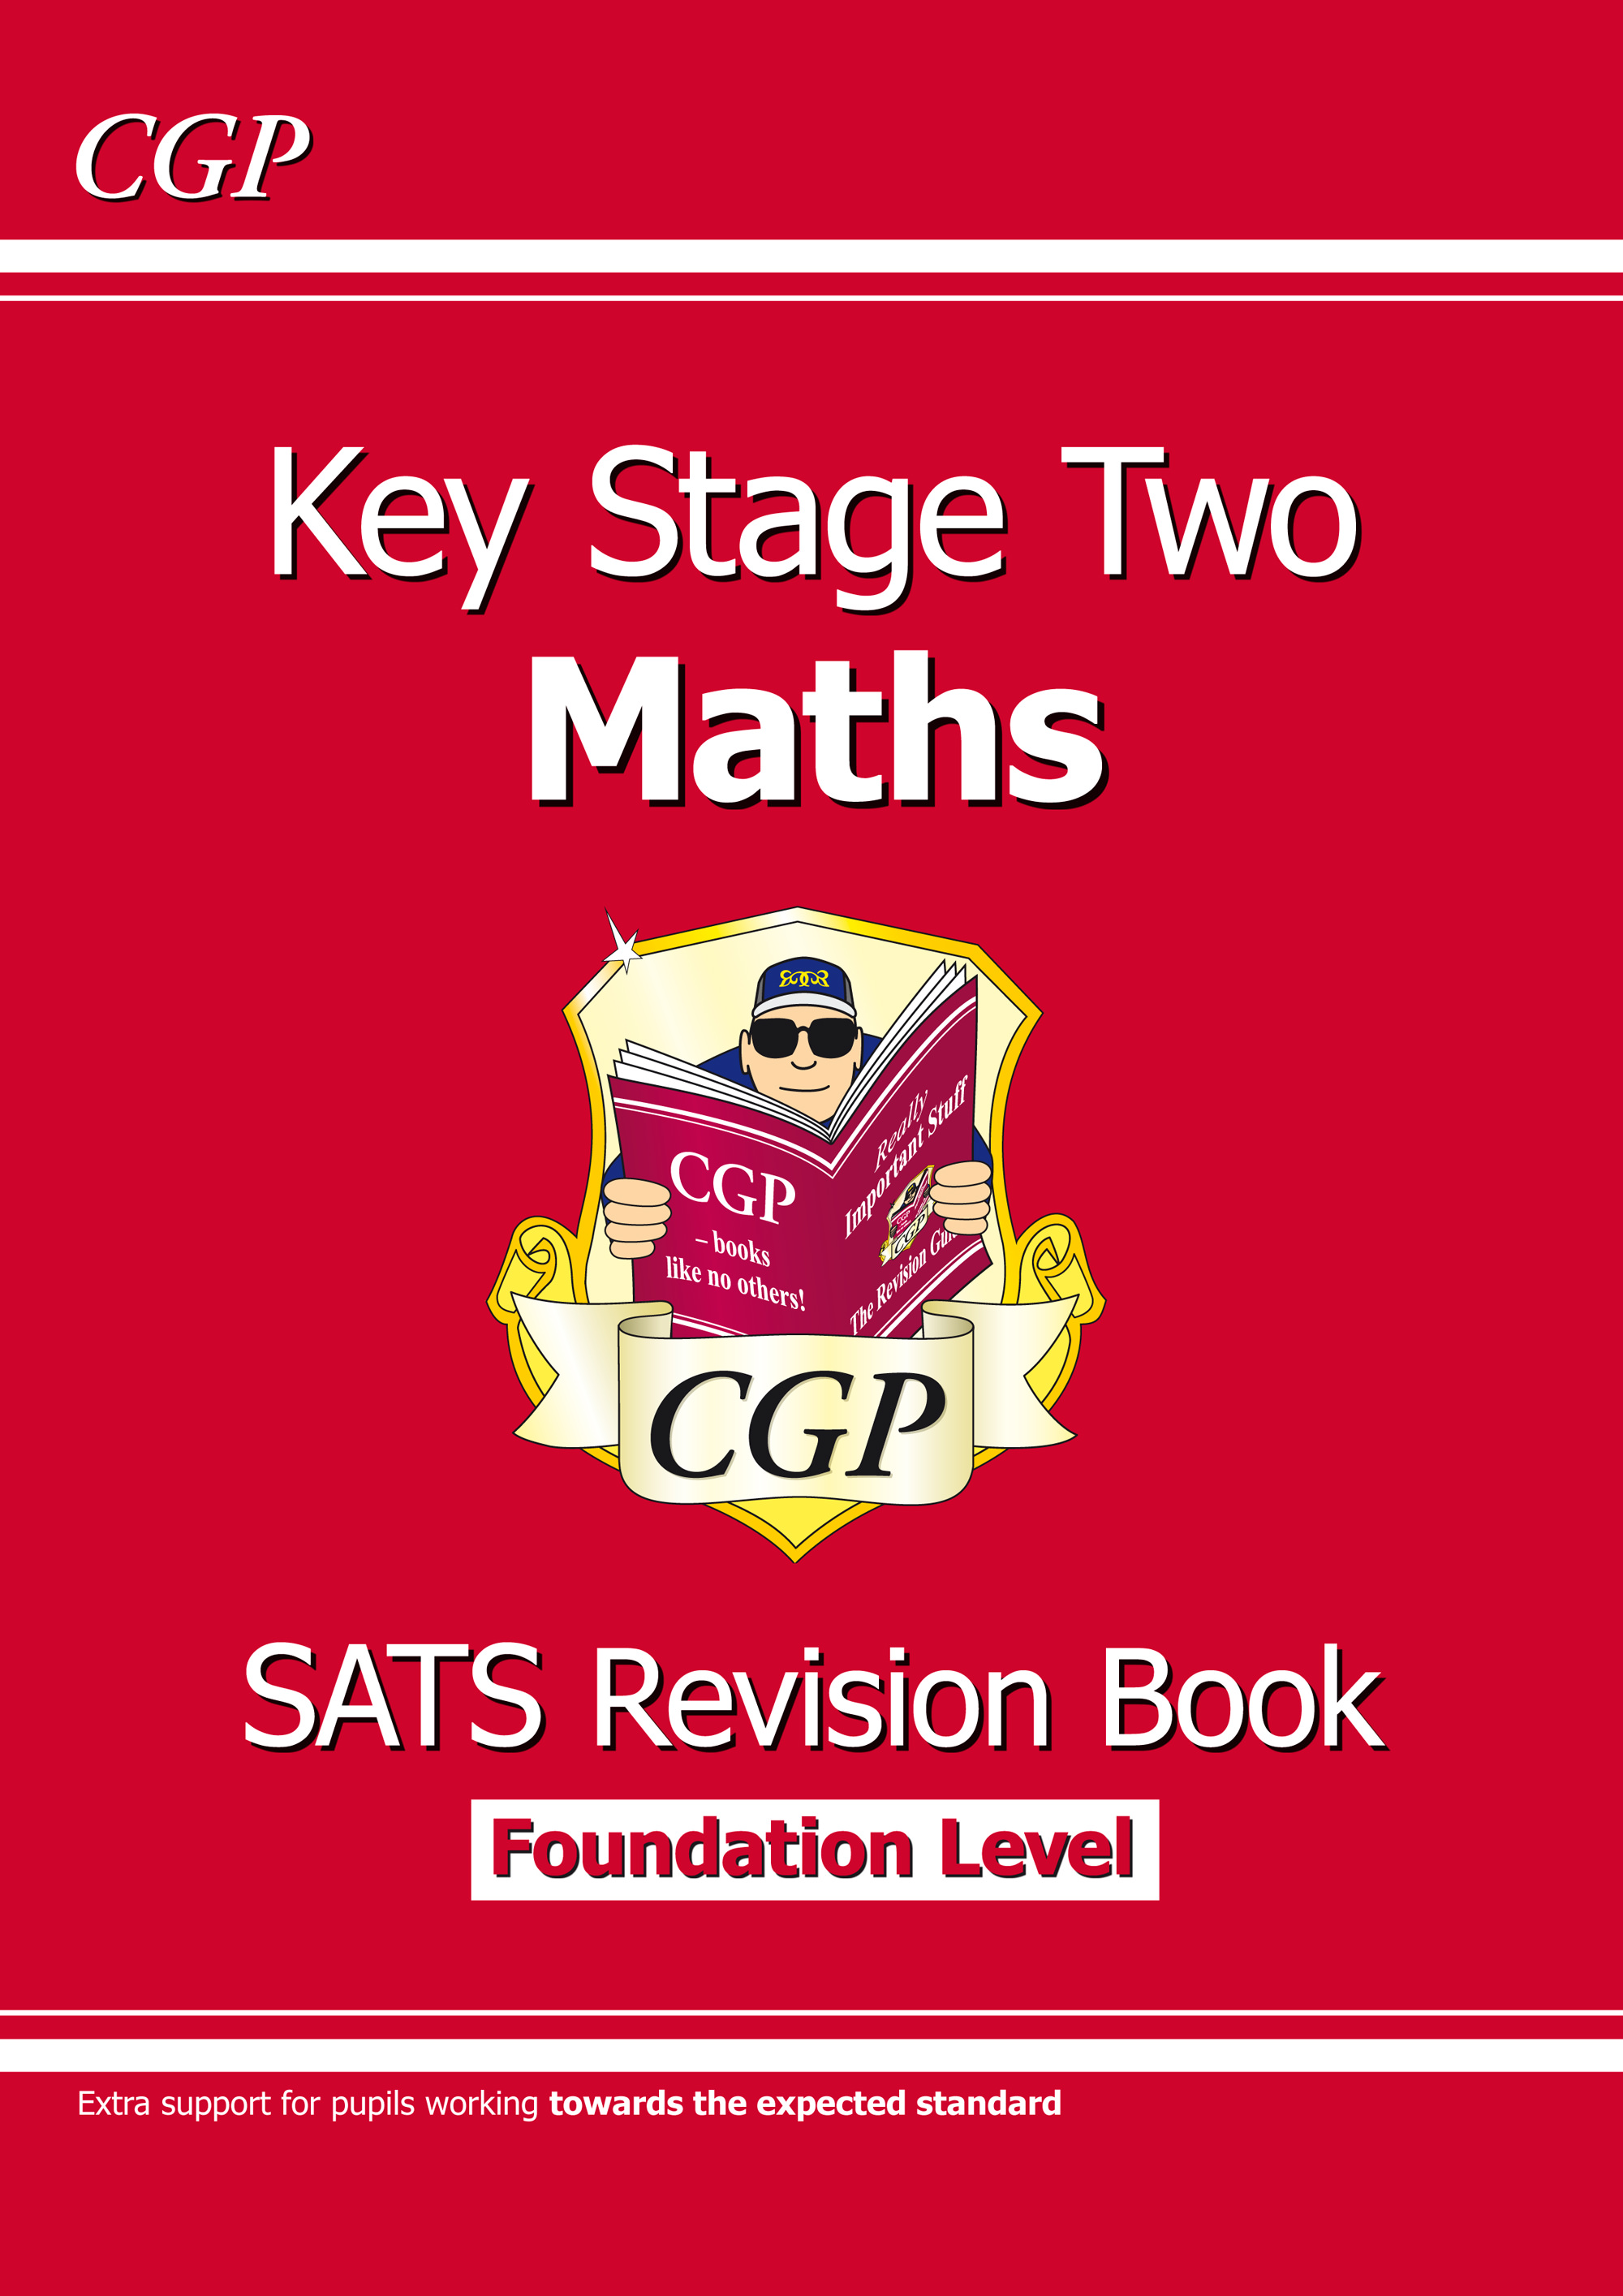 MLBR22 - KS2 Maths Targeted SATs Revision Book - Foundation Level (for the 2019 tests)